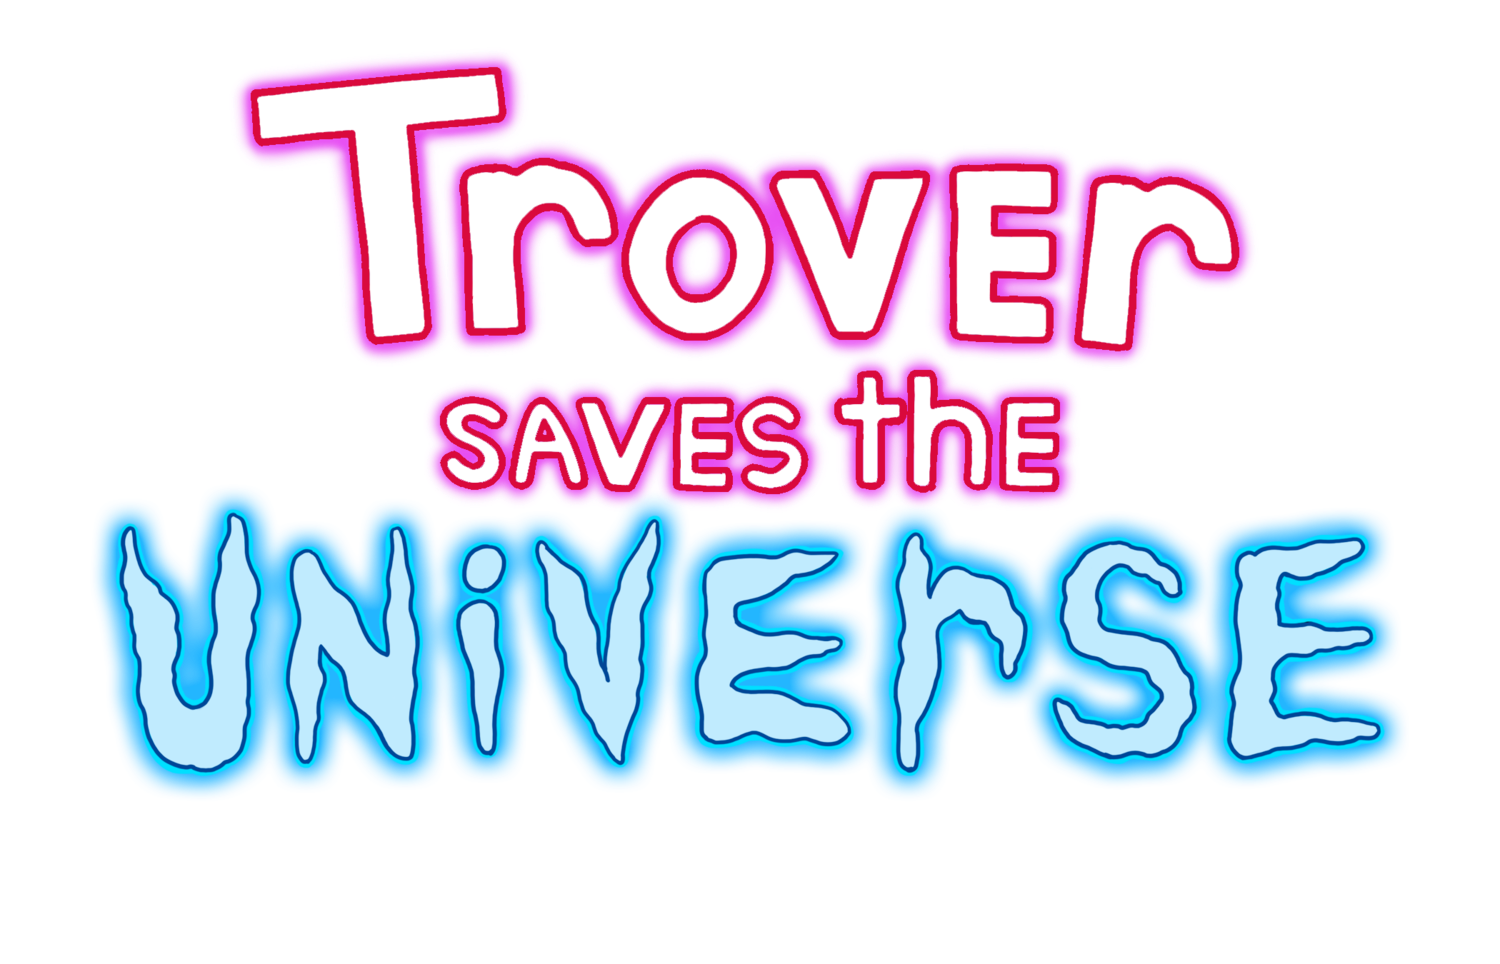 Trover Saves The Universe Buy Now Trover Saves The Universe